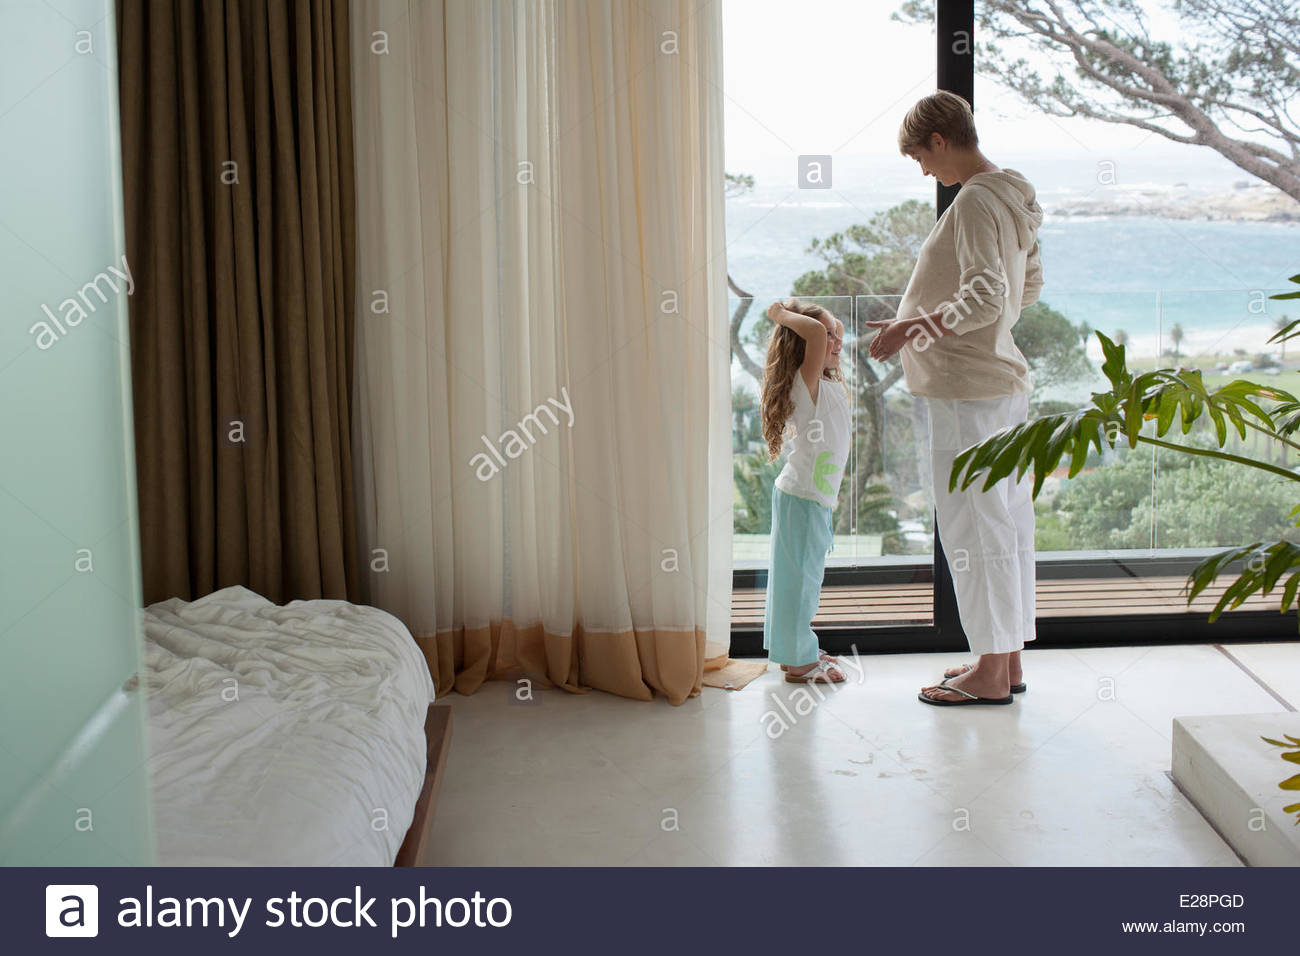 Daughter and pregnant mother - Stock Image